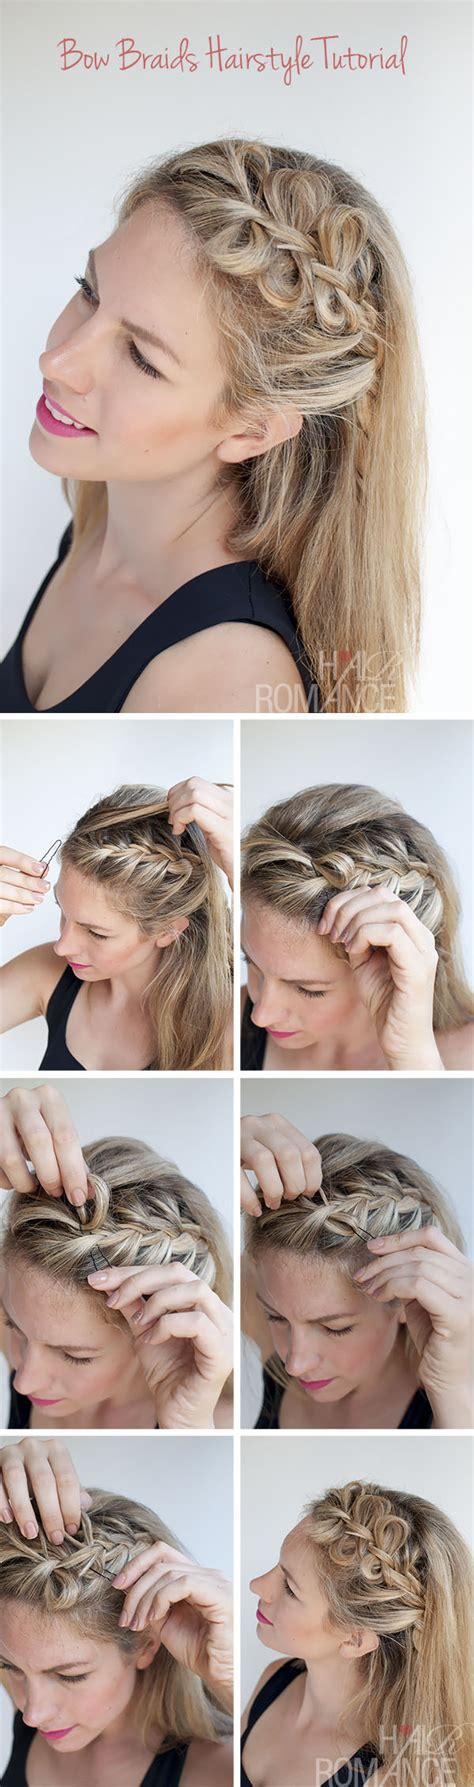 how to braid short hair step by step step by step hair braids tutorial